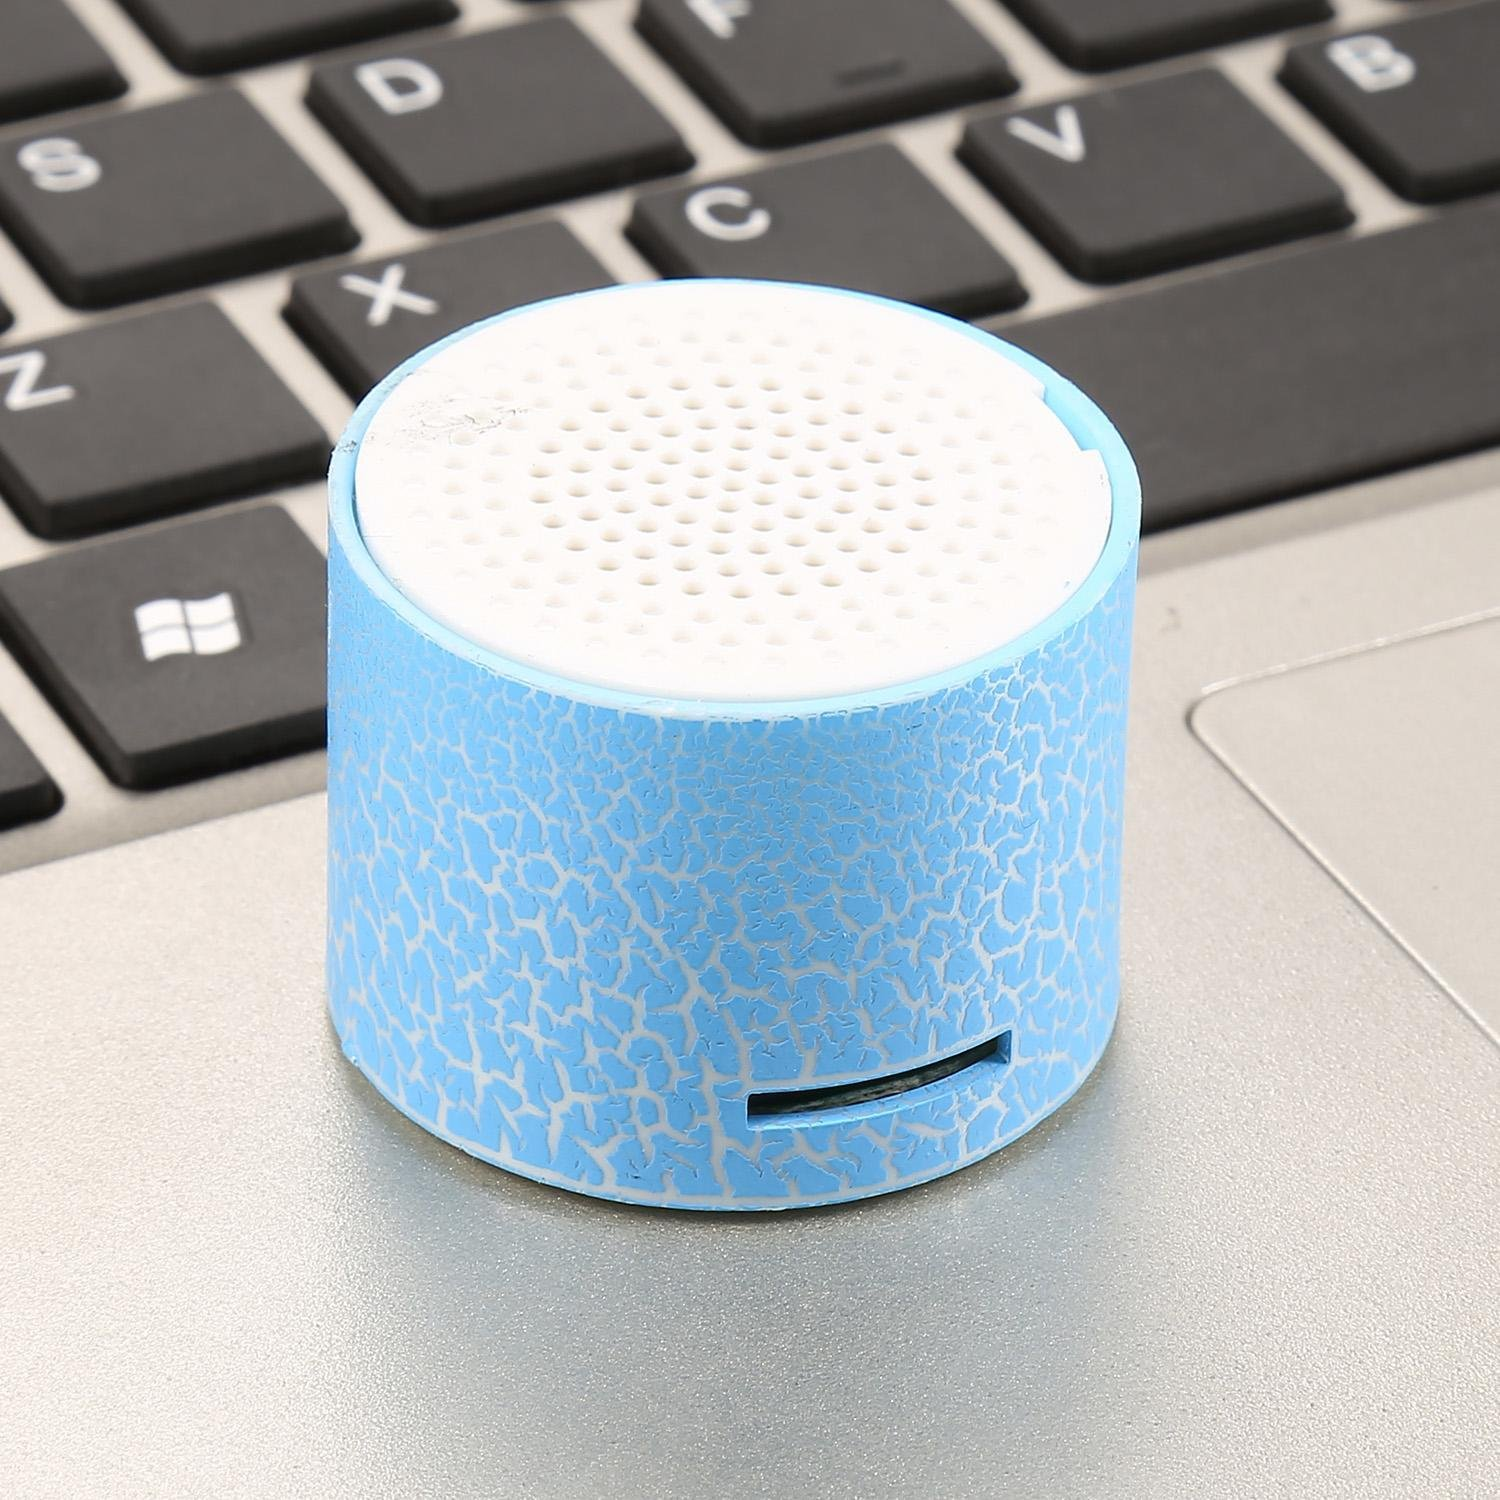 ThinIce Wireless Speakers Portable mini Speaker with LED, Support USB and TF Card, Small Speaker for iPod, MP3